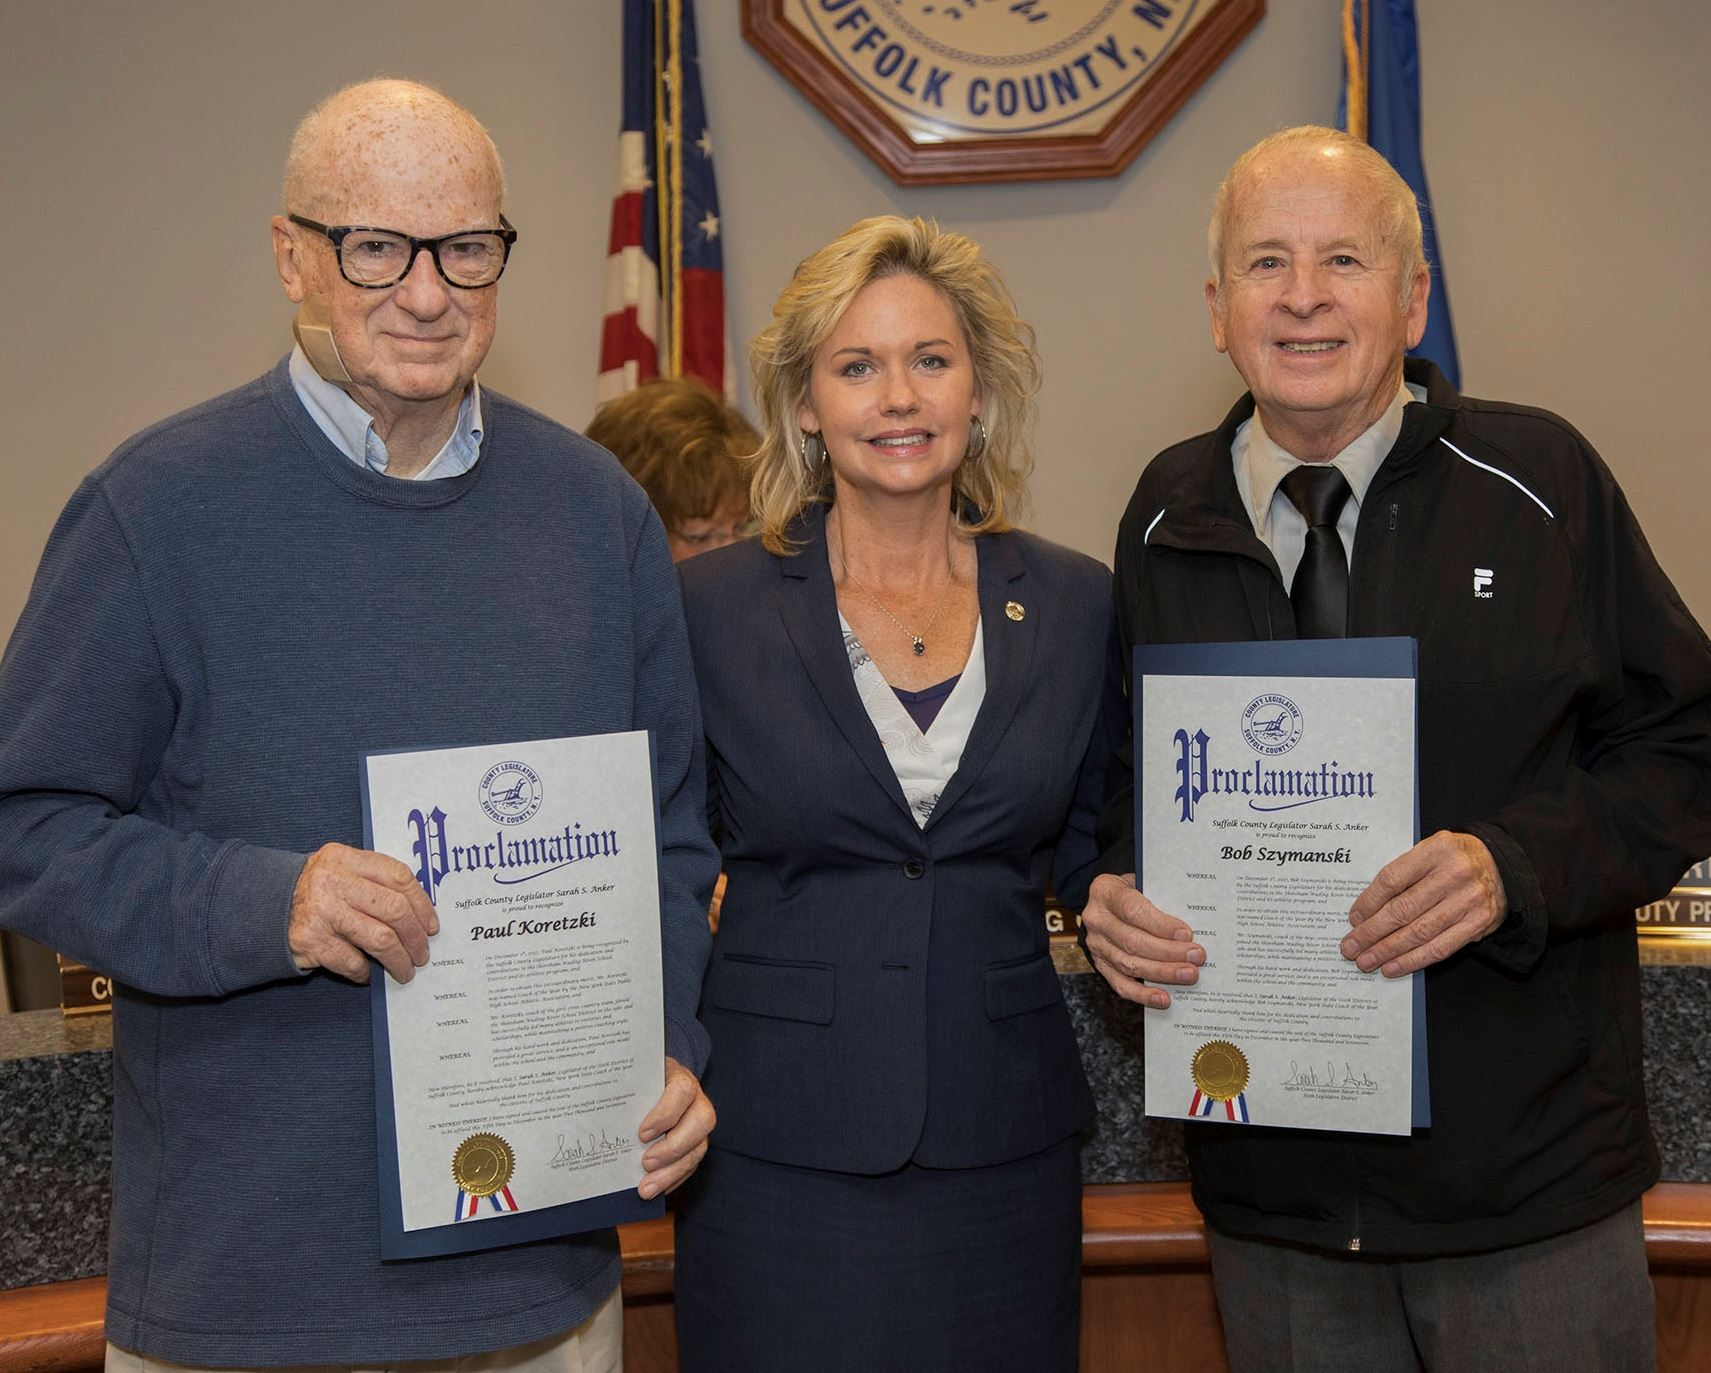 County Legislator Sarah Anker honored Coaches Paul Koretzki and Bob Syzmanski with proclamations.